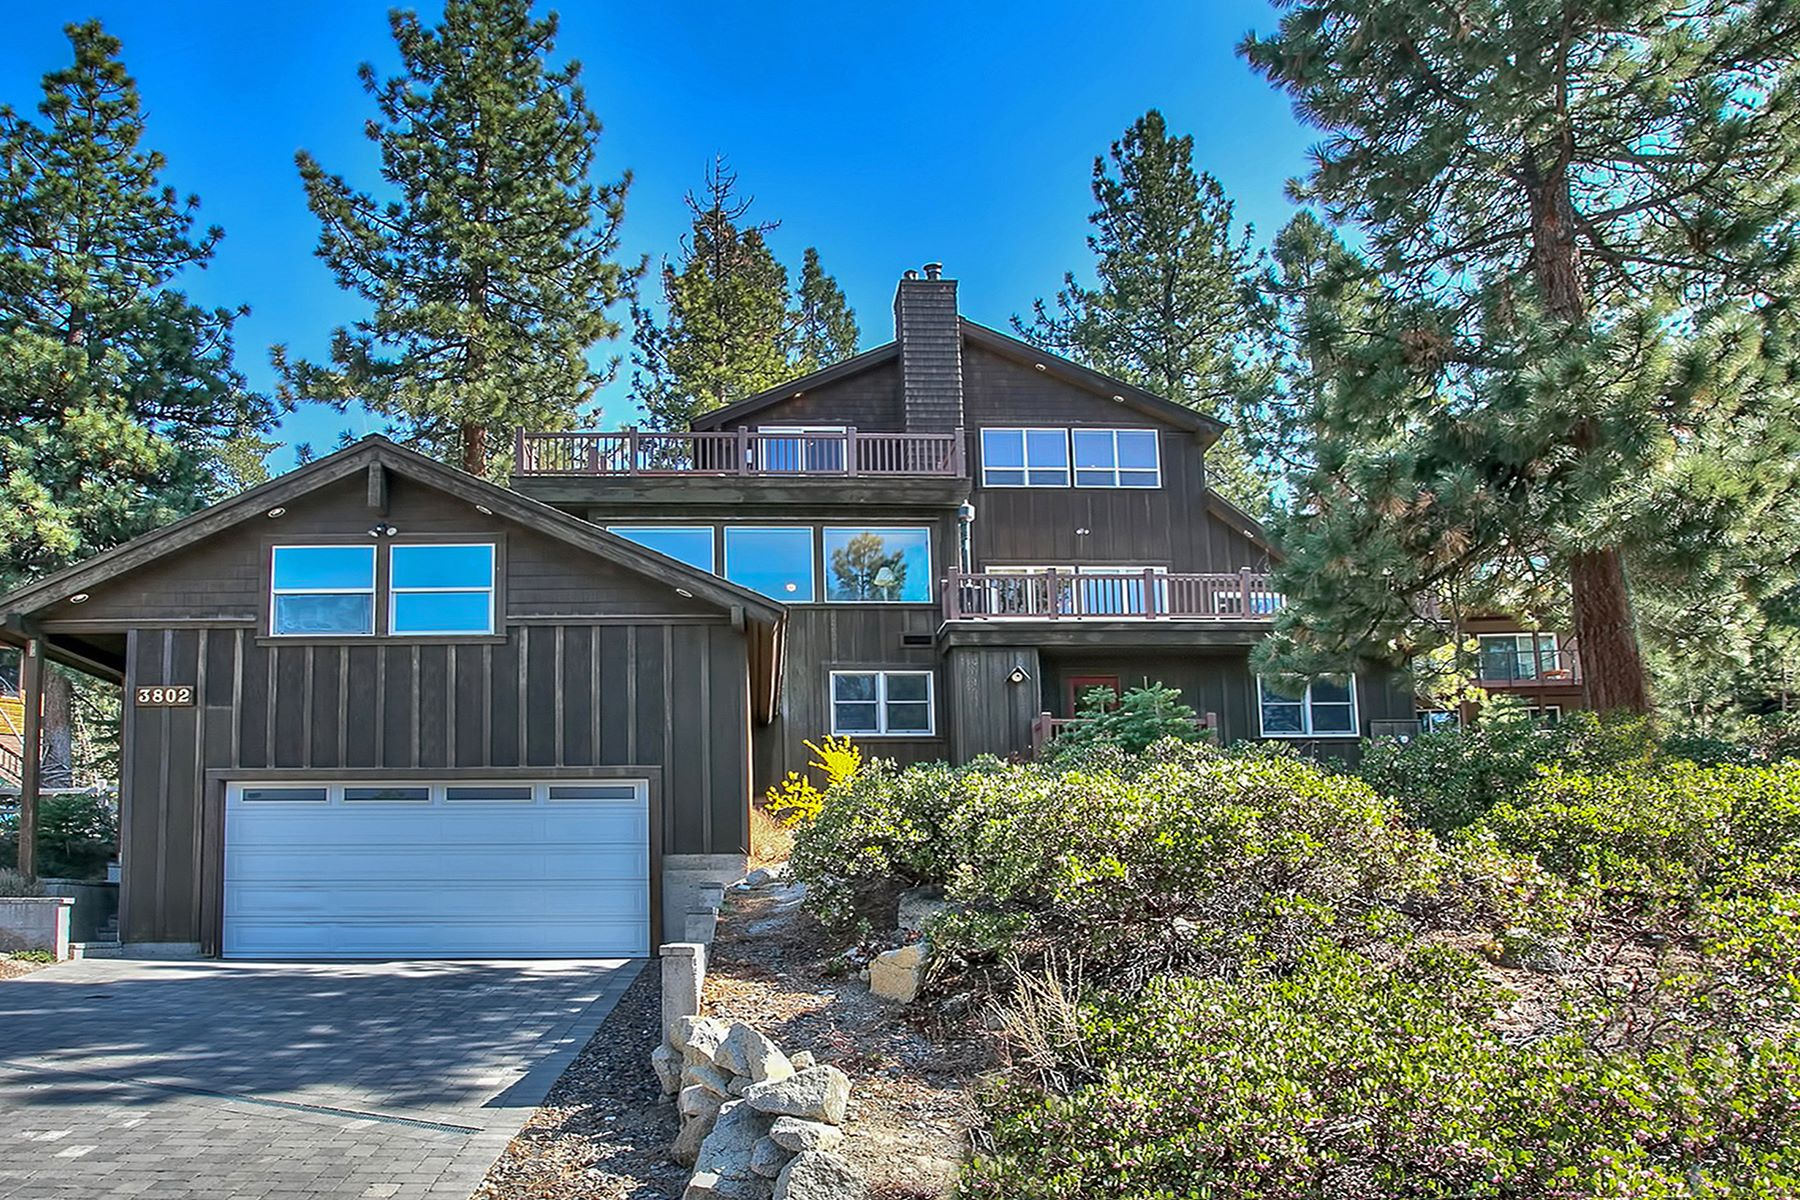 Single Family Home for Active at 3802 Lucinda Court 3802 Lucinda Court South Lake Tahoe, California 96150 United States